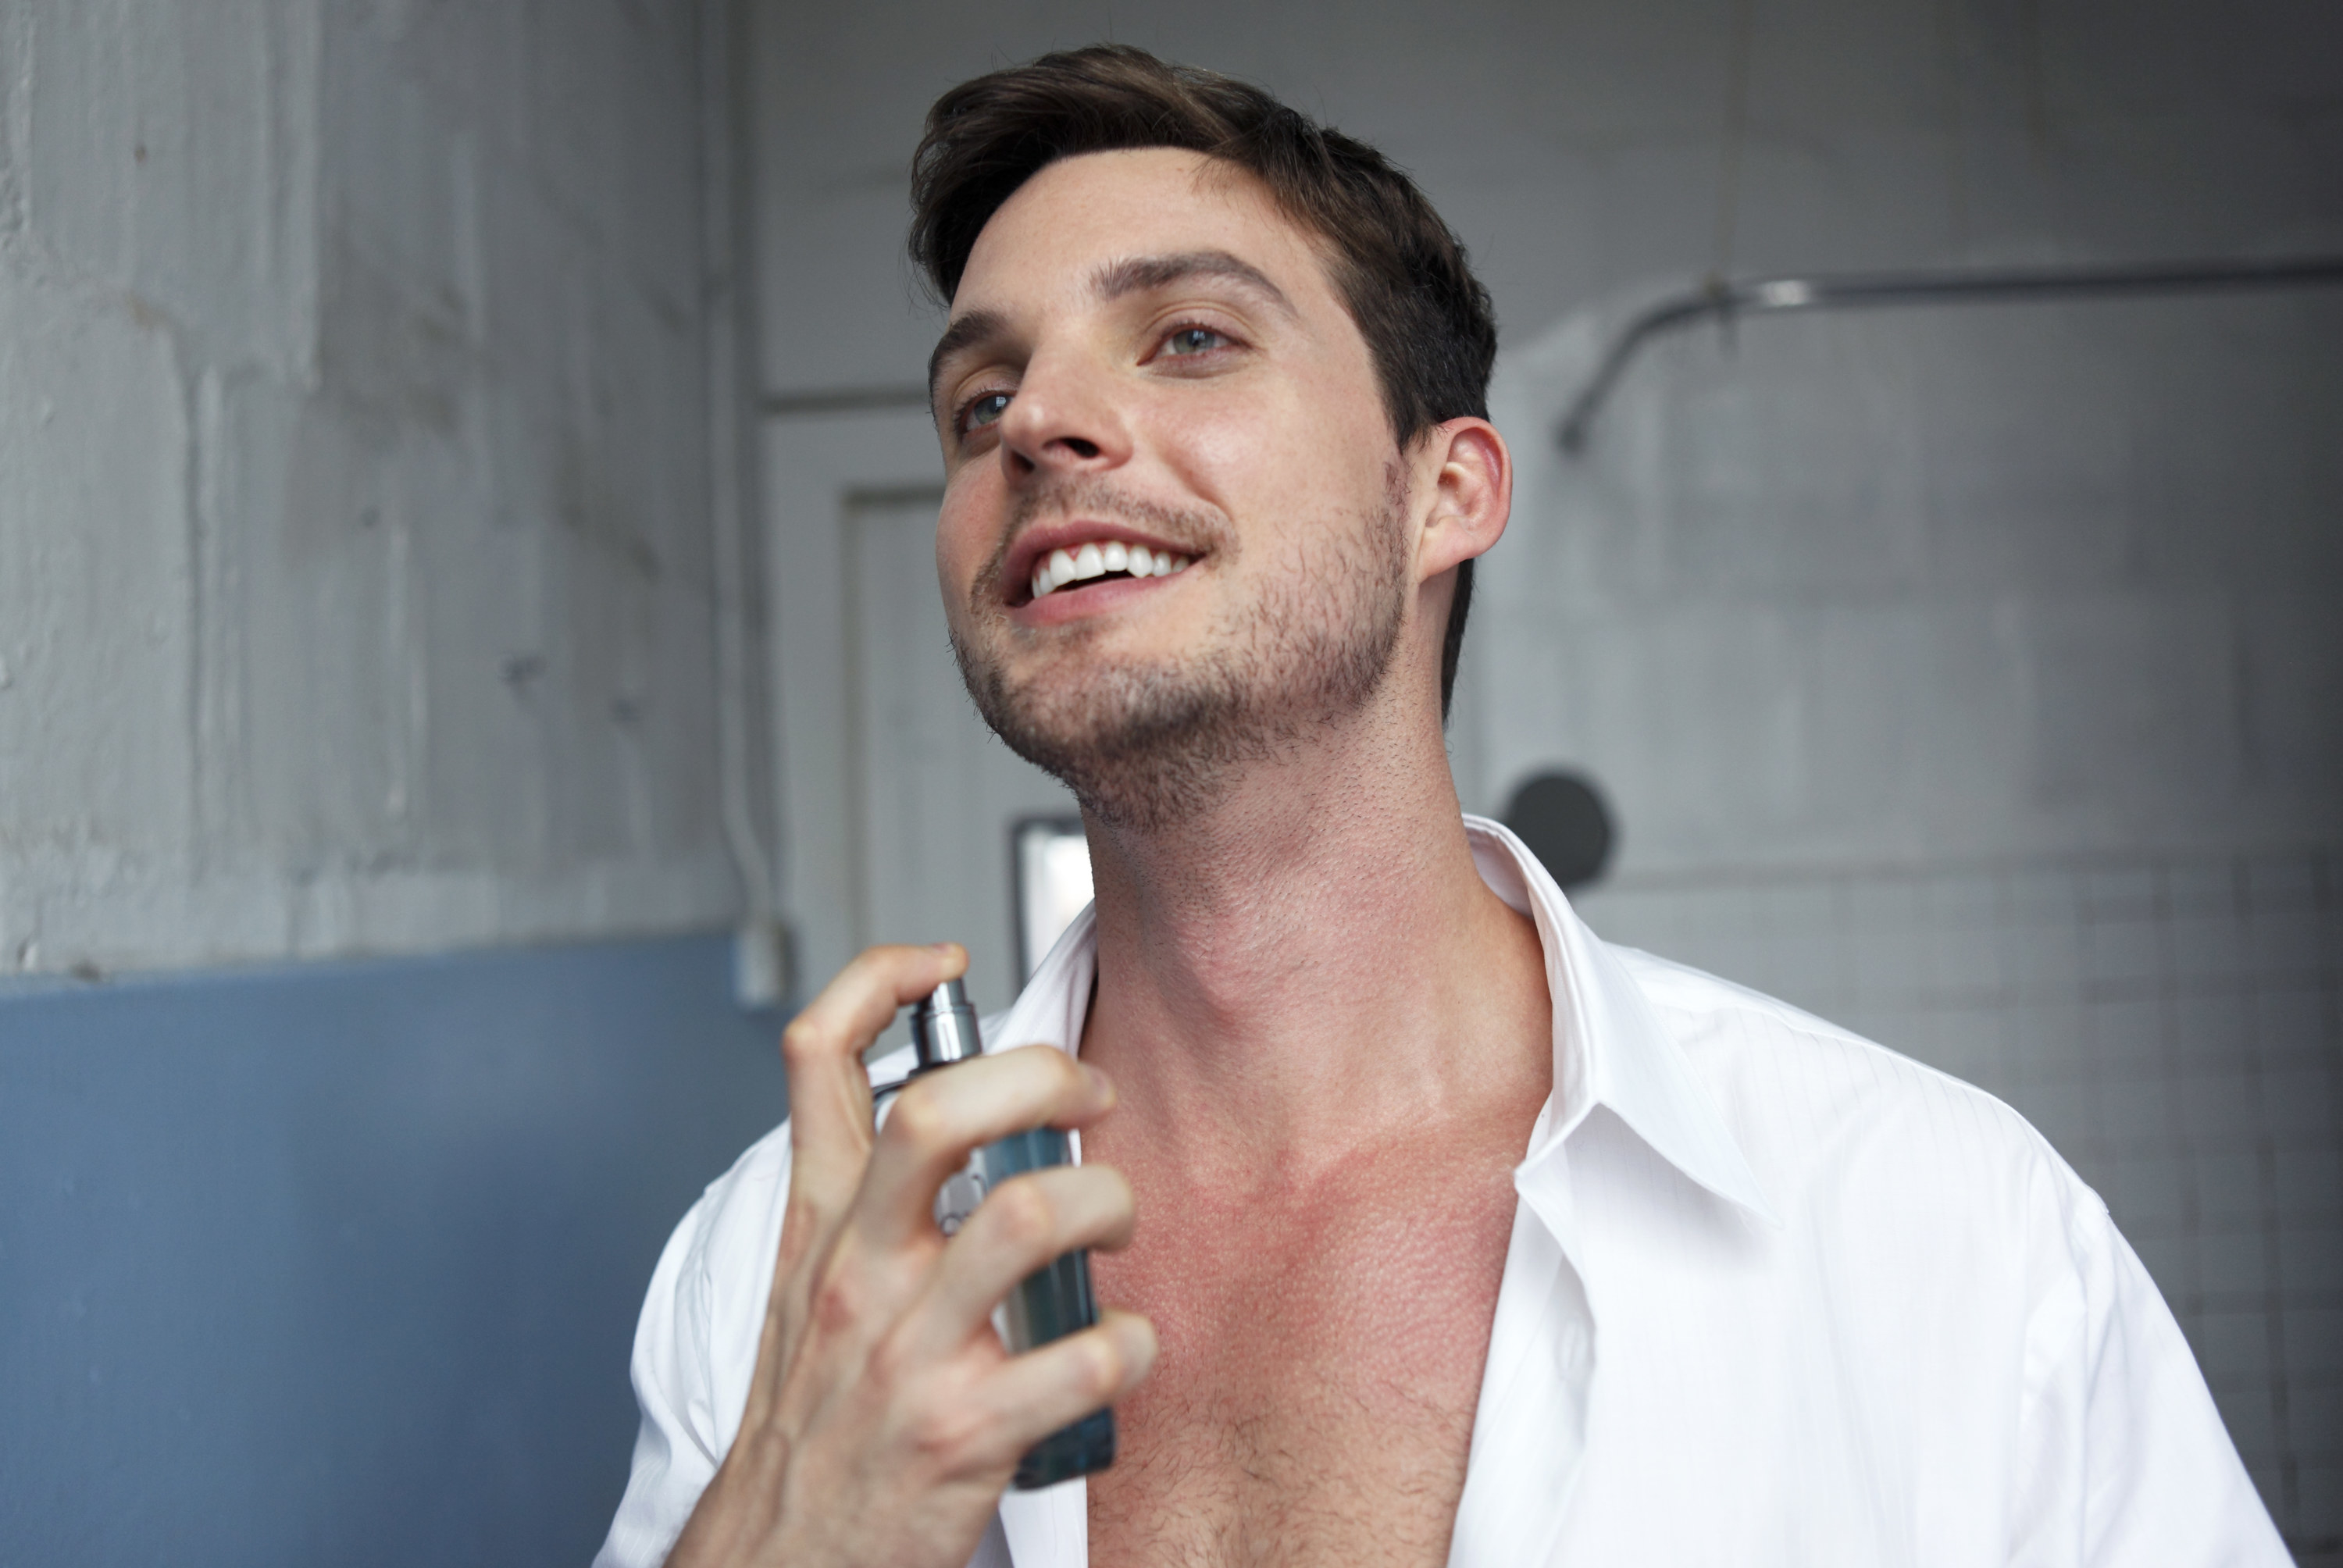 A man spraying cologne on himself